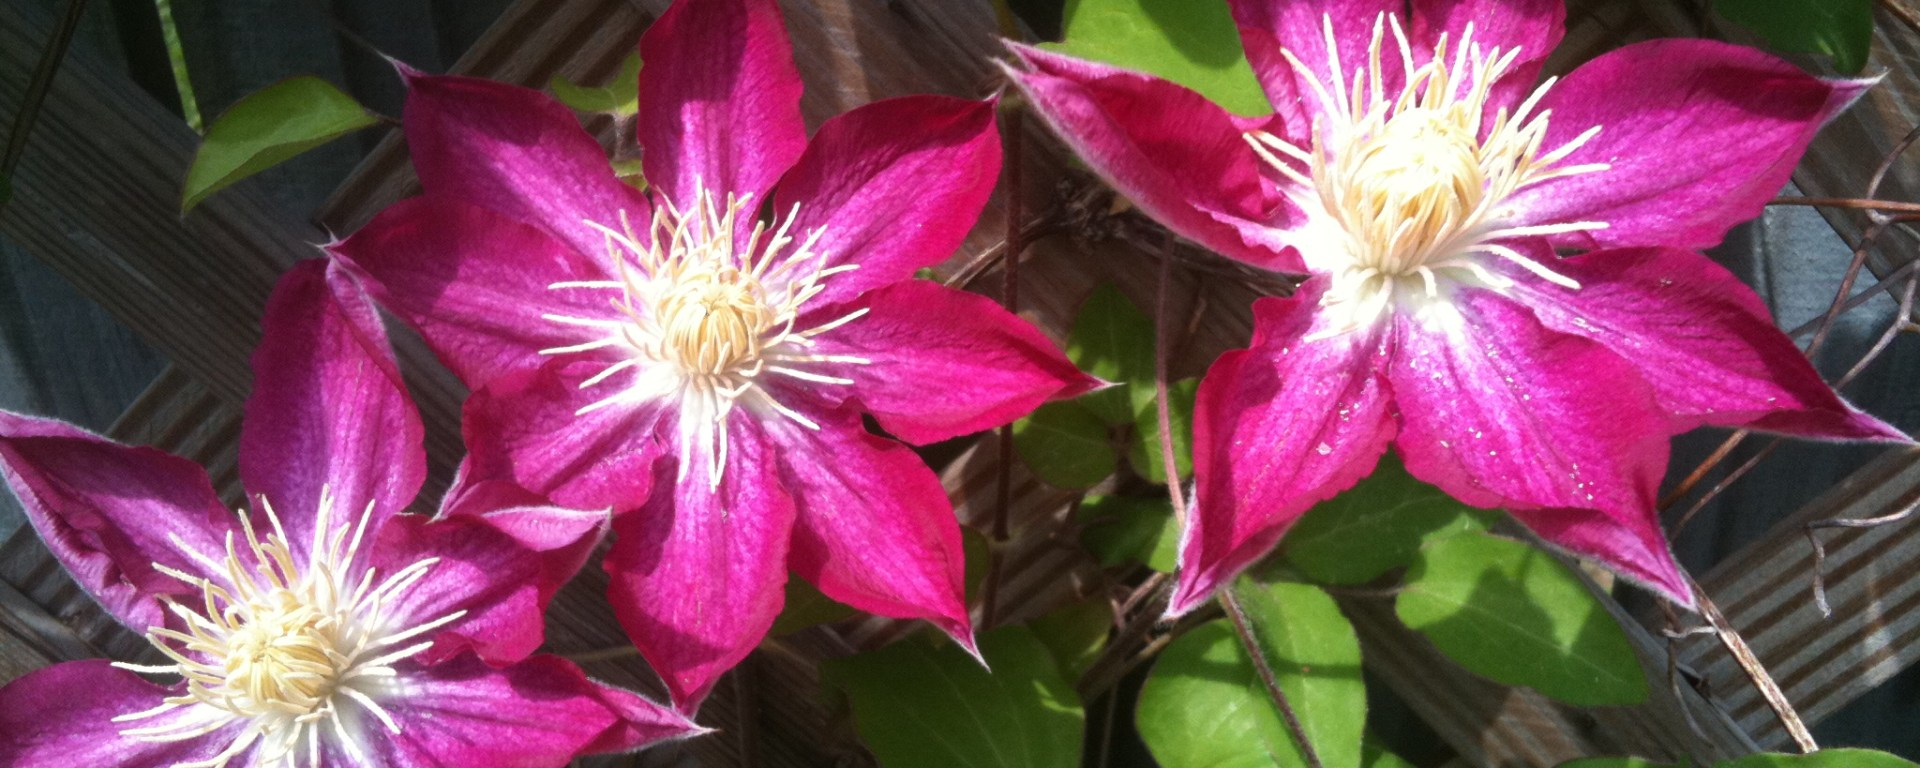 fireworks clematis